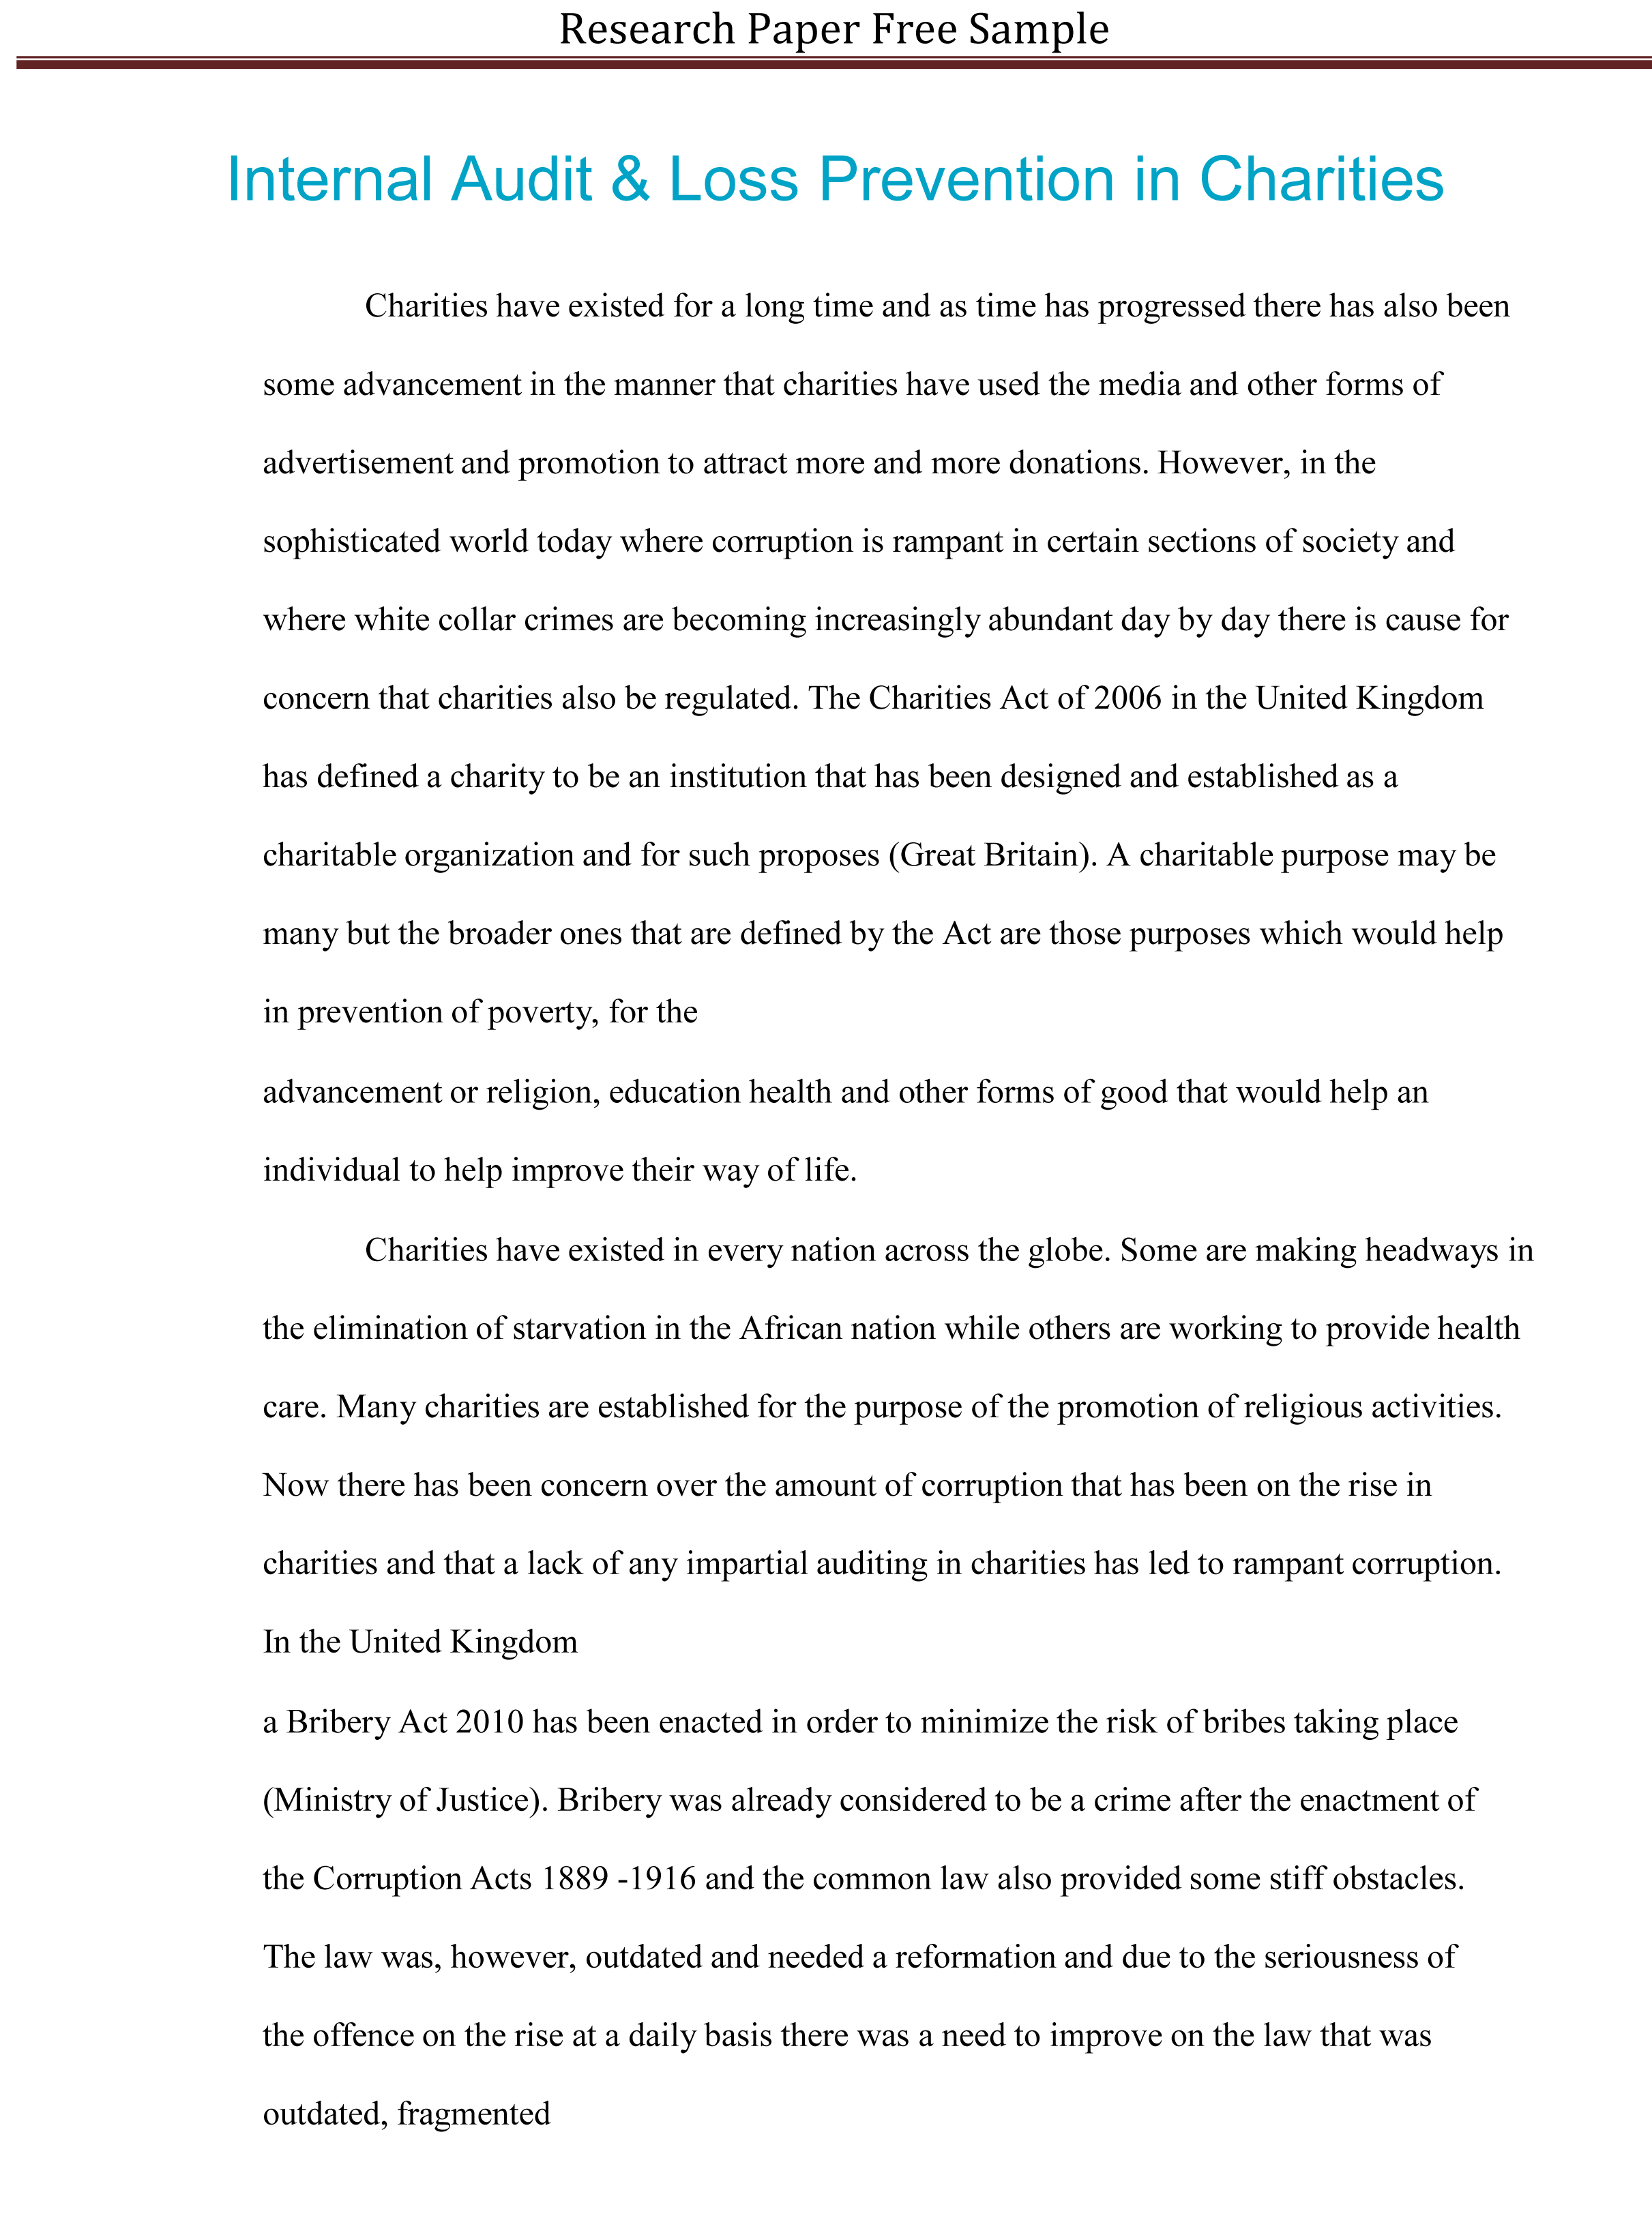 014 Example Of Introduction In Research Paper Help Writing Paragraph Unique About Business Bullying Cyberbullying Full